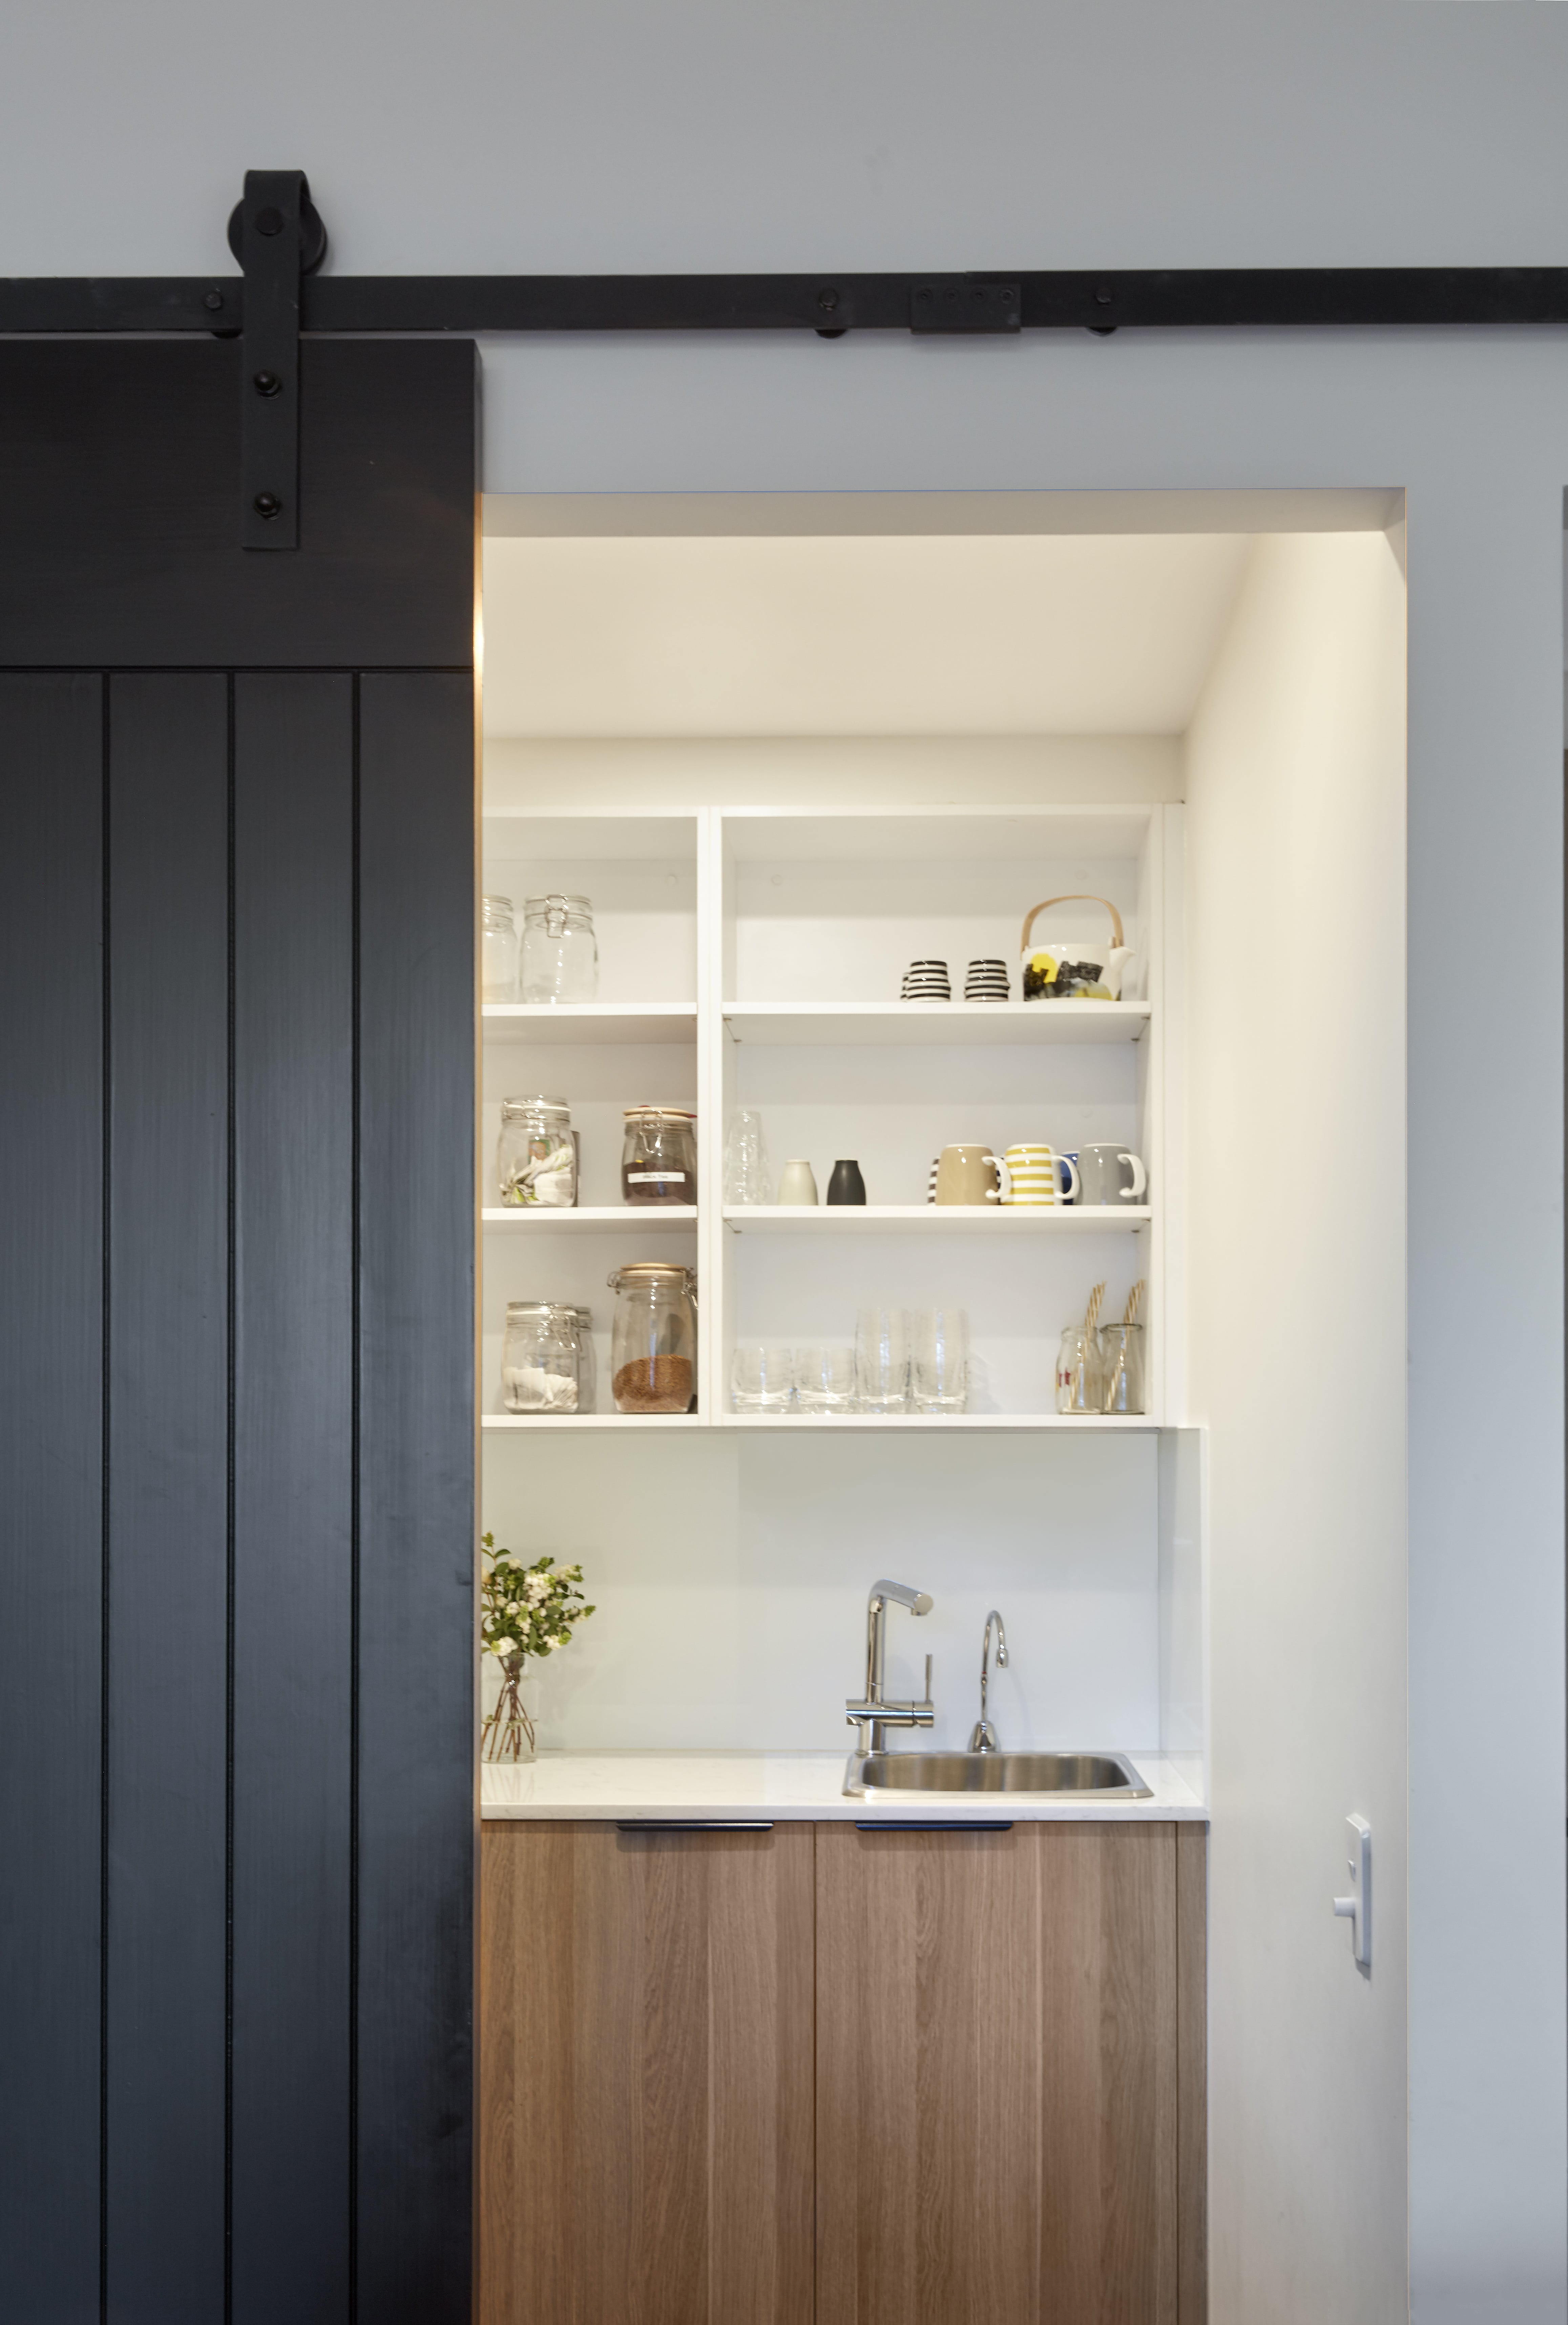 Gallery Of Middle Park Home By Smarter Bathrooms+ Local Design And Interiors Middle Park, Vic Image 8